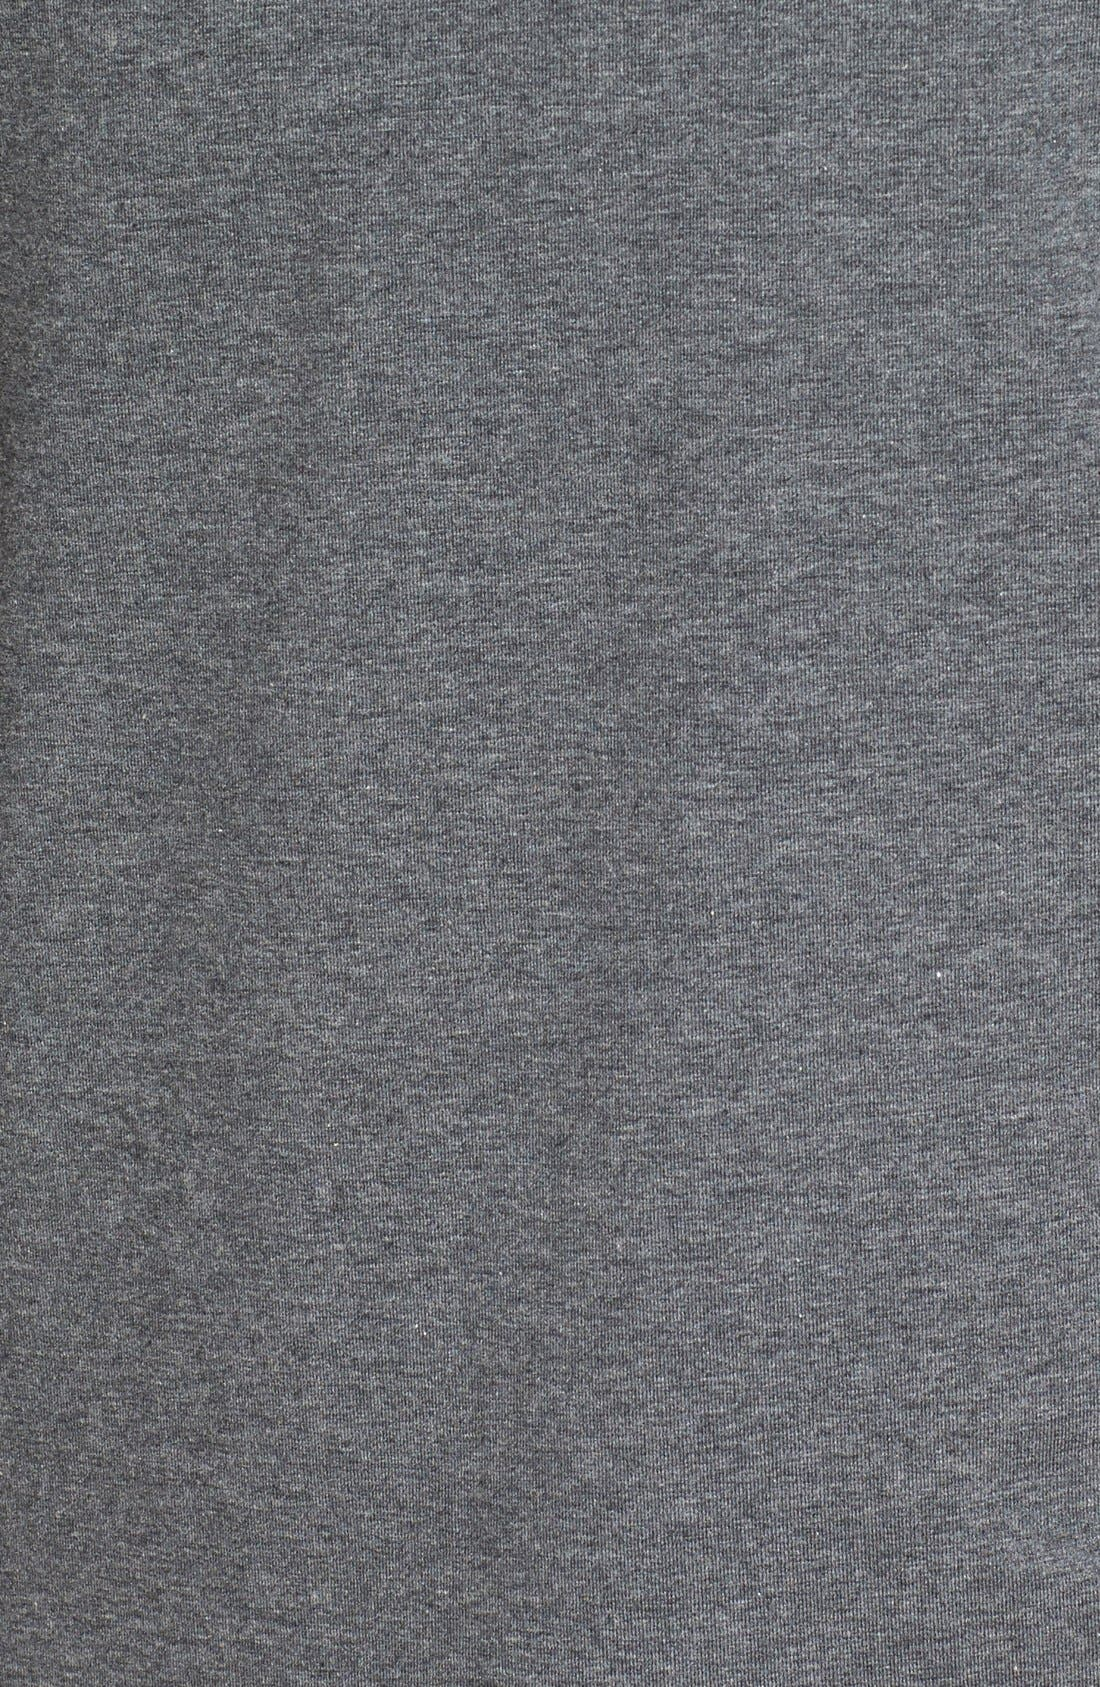 Long Sleeve Turtleneck T-Shirt,                             Alternate thumbnail 5, color,                             CHARCOAL